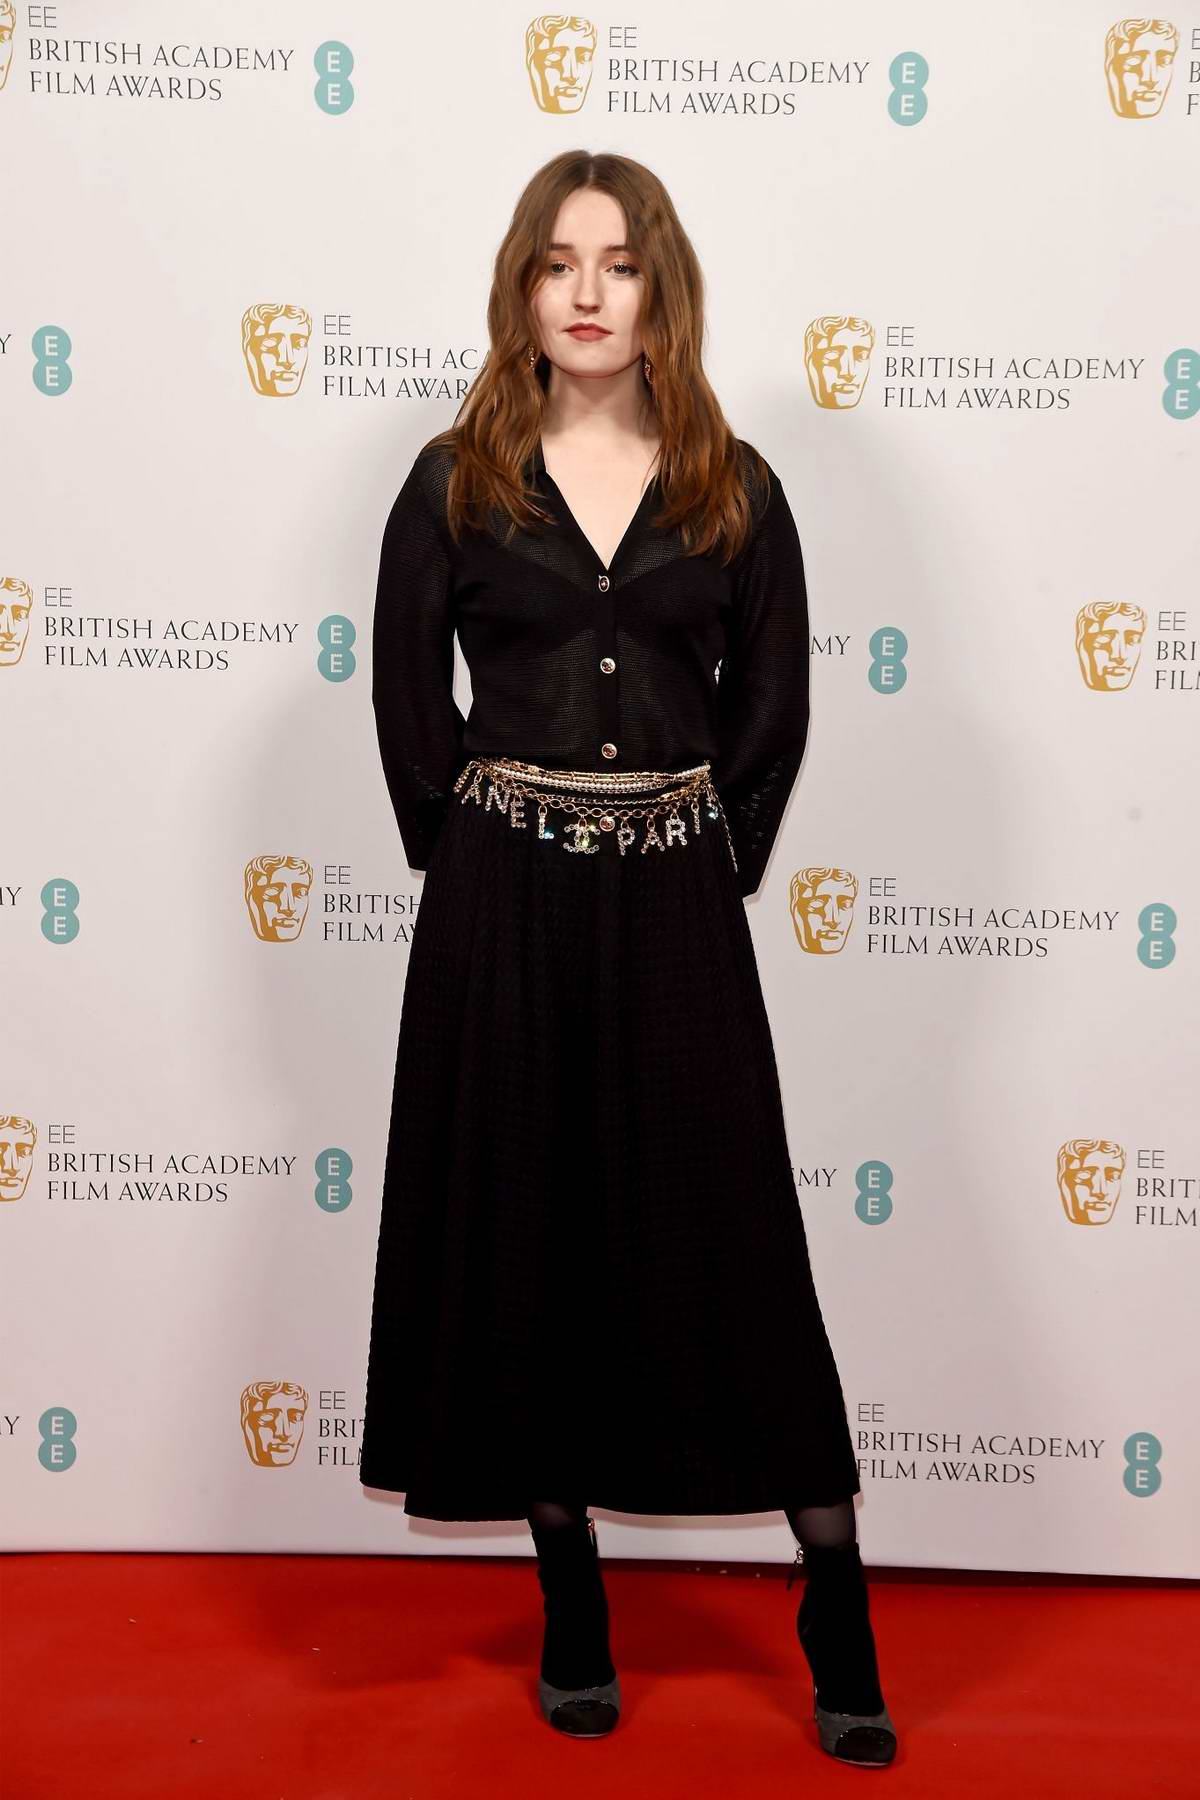 Kaitlyn Dever attends the EE British Academy Film Awards 2020 Nominees Party in London, UK